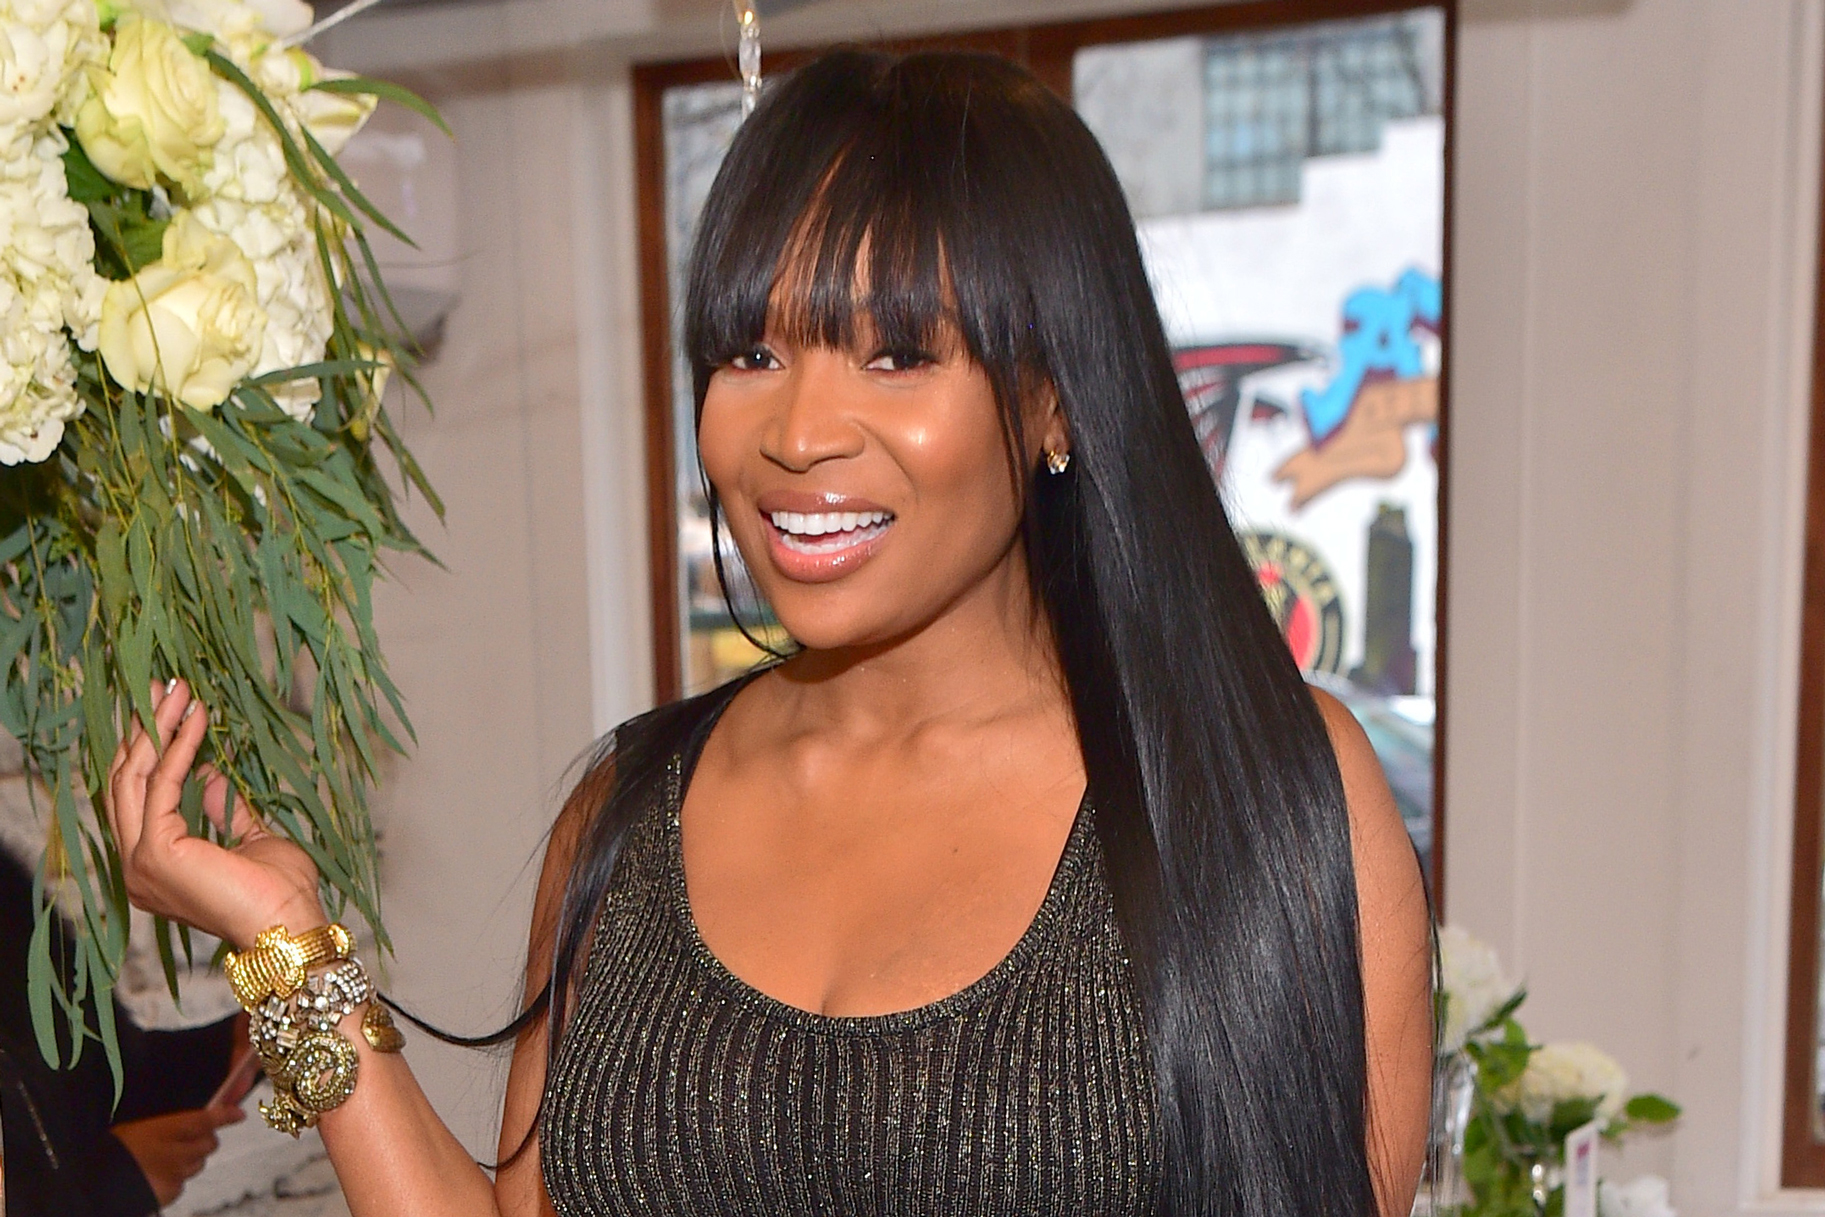 marlo-hampton-addresses-rumors-she-was-a-prostitute-and-more-nene-leakes-supports-her